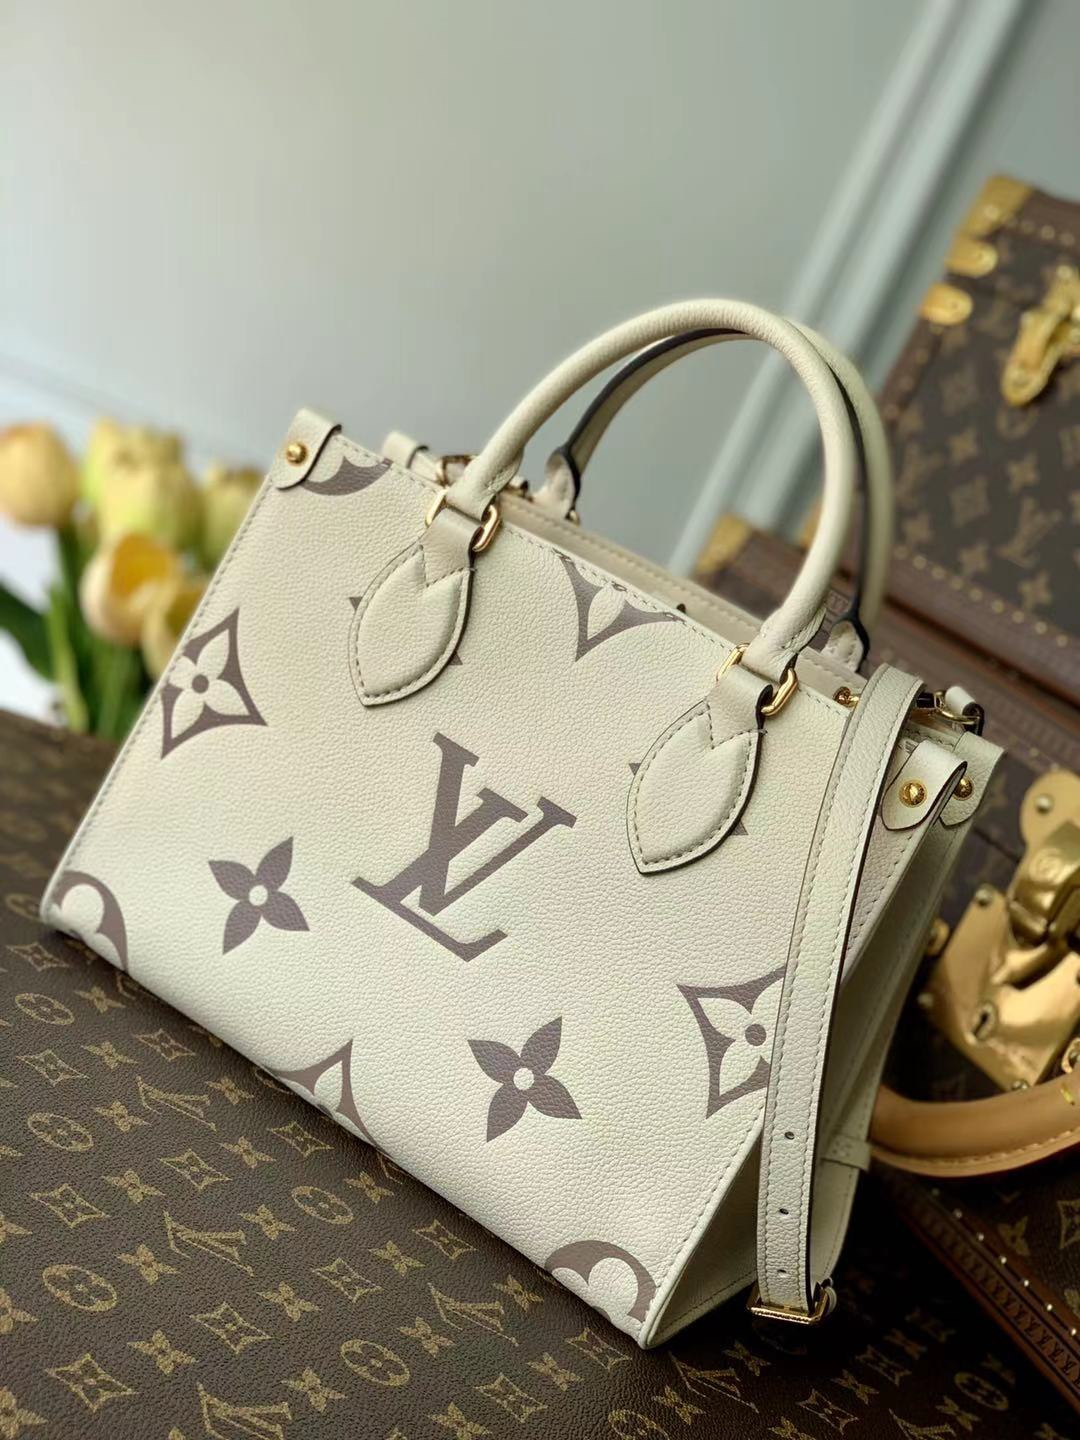 Replica Louis Vuitton M45654 Onthego PM Embossed Grained Cowhide Leather White